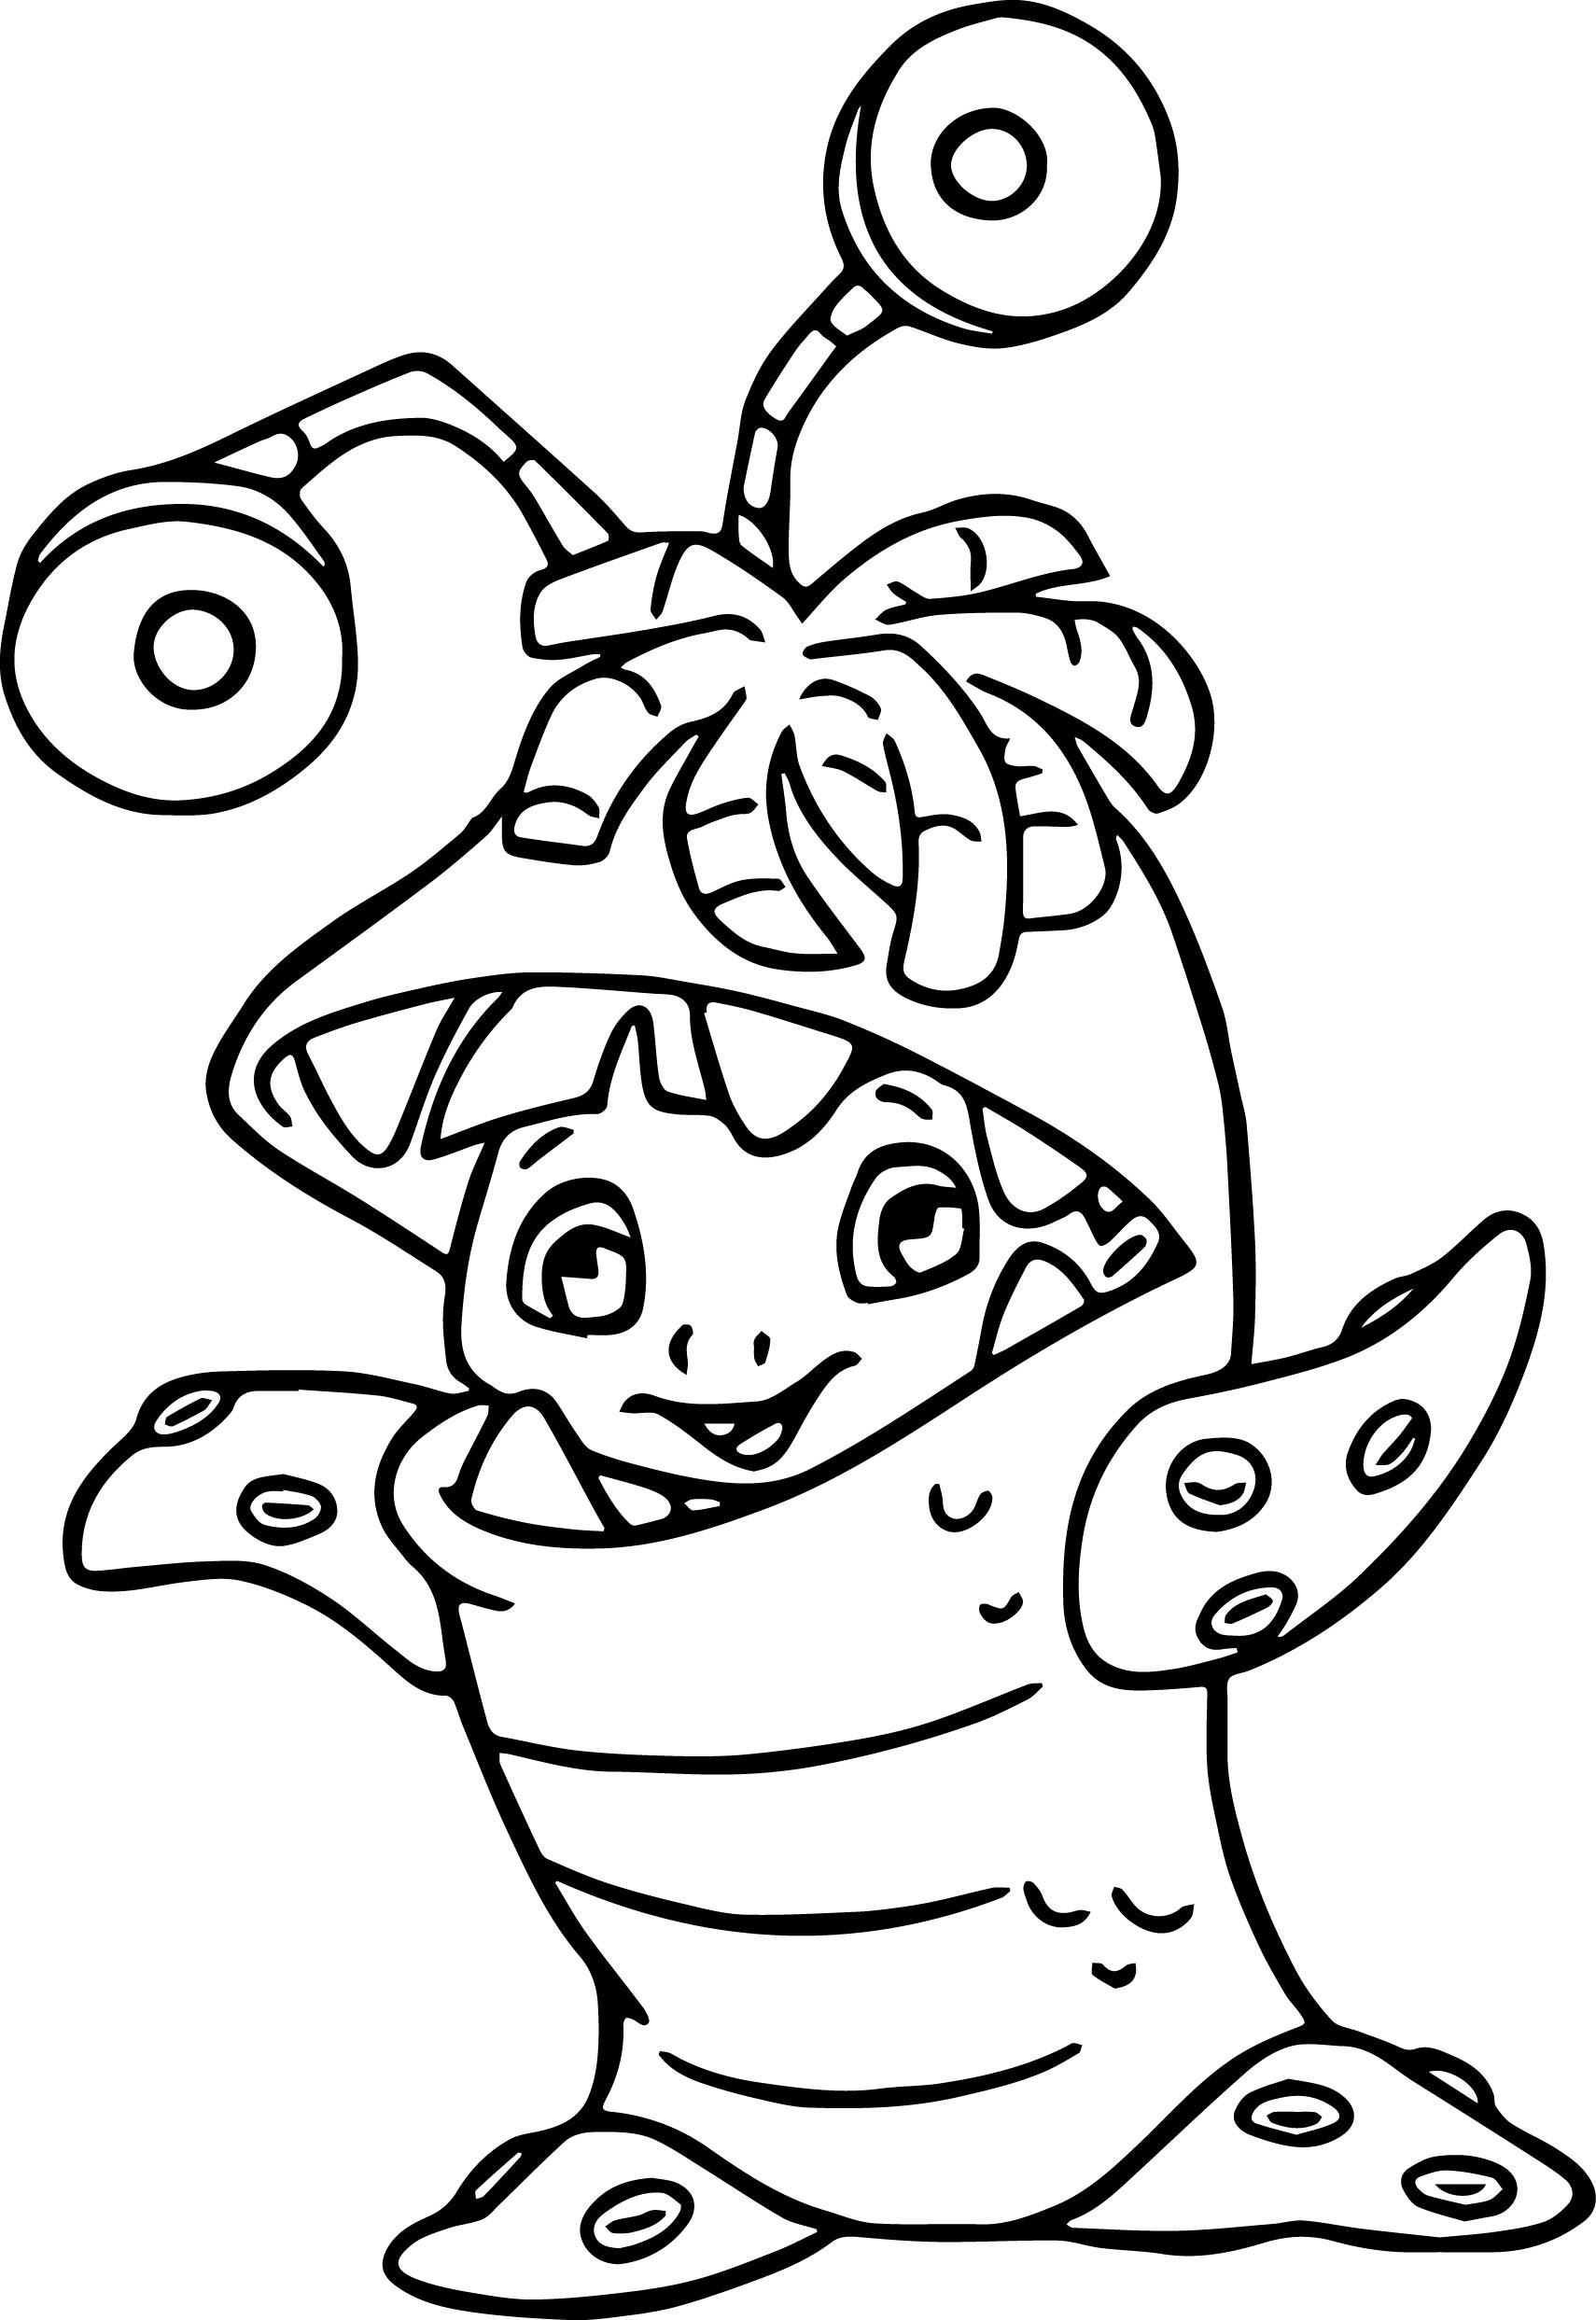 1710x2486 Randall And Mike From Monster Inc Coloring Pages For Kids